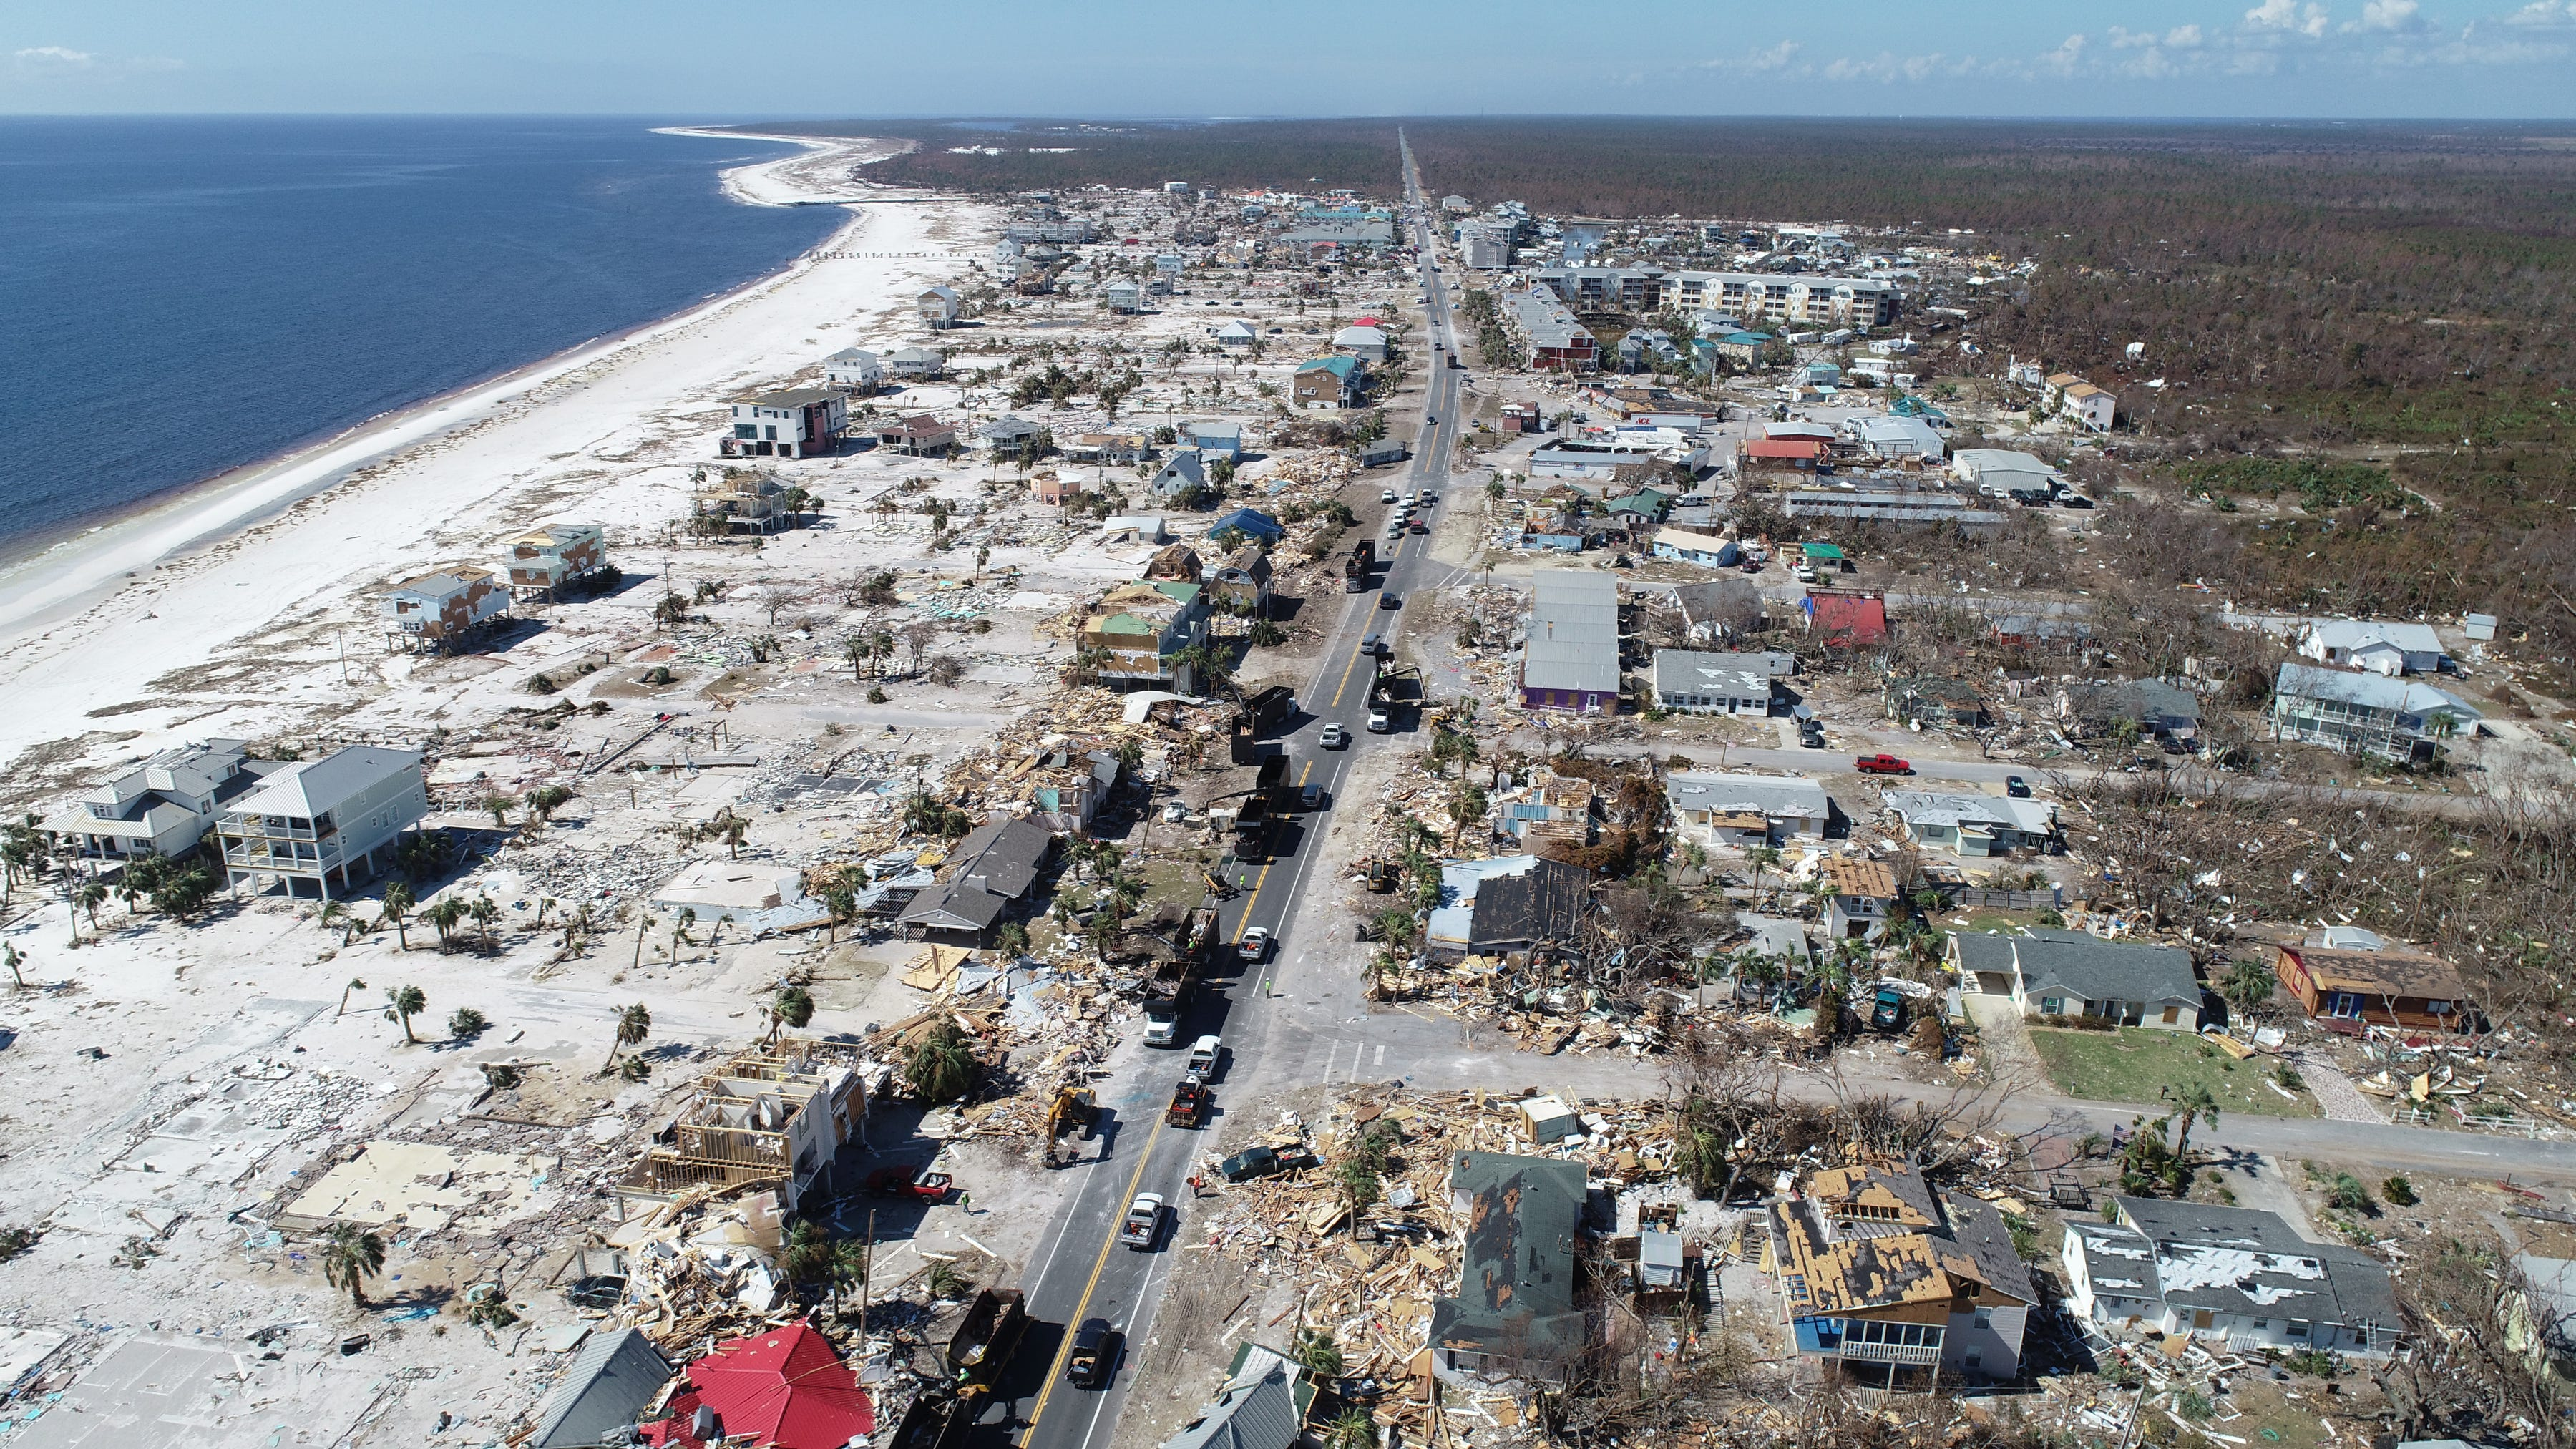 Hurricane Michael Upgraded To Category 5 Storm